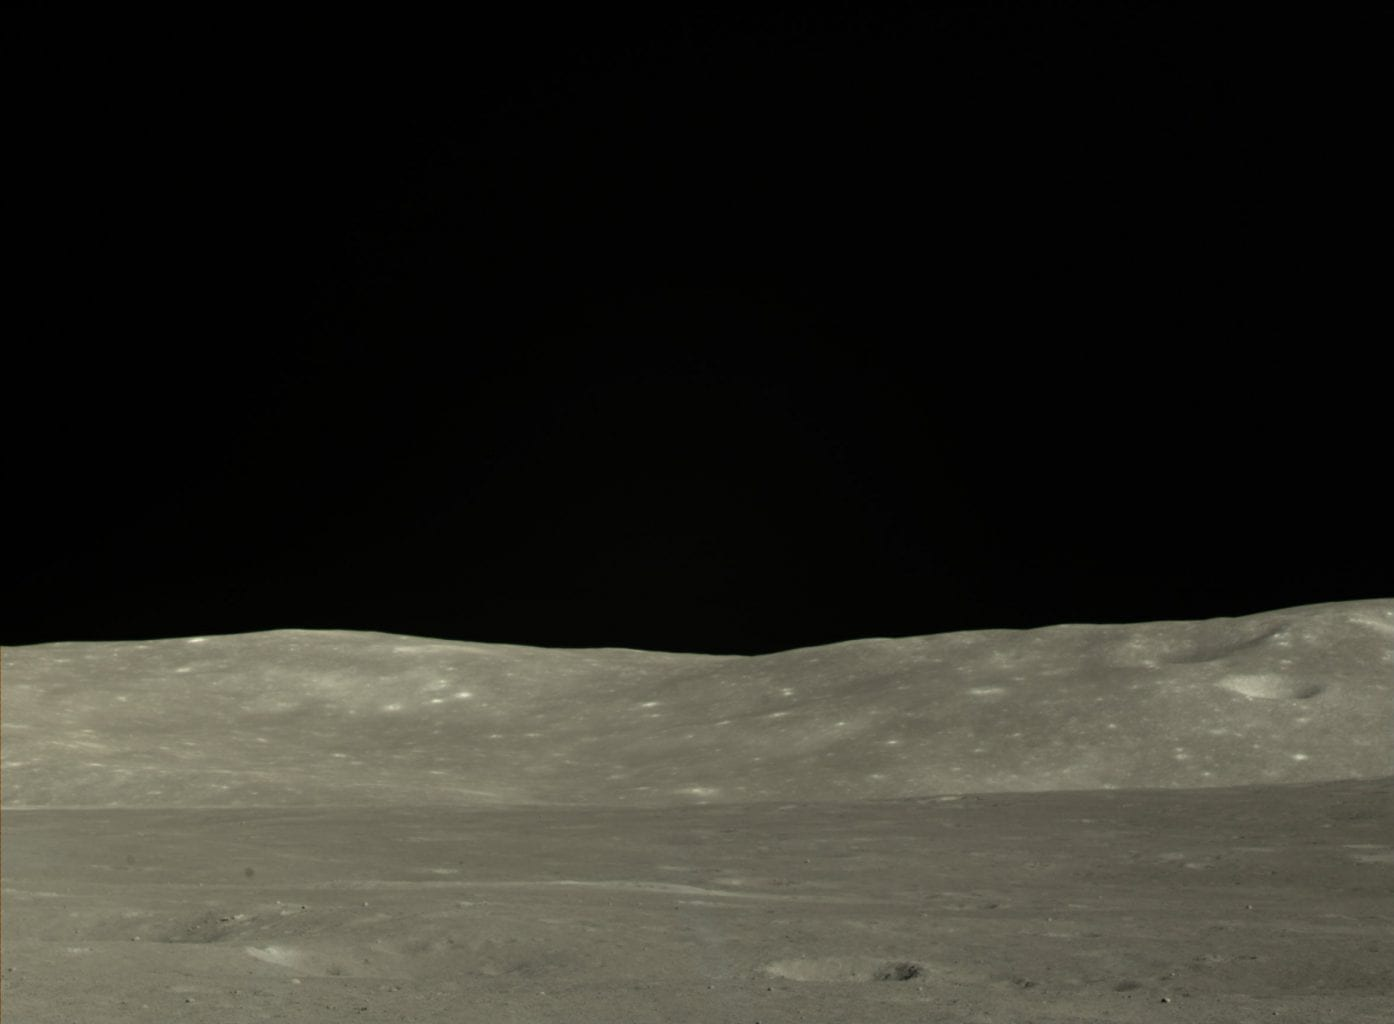 The borders of the Von Carman crater on the far side of the Moon. Credit: CLEP/ Doug Ellison